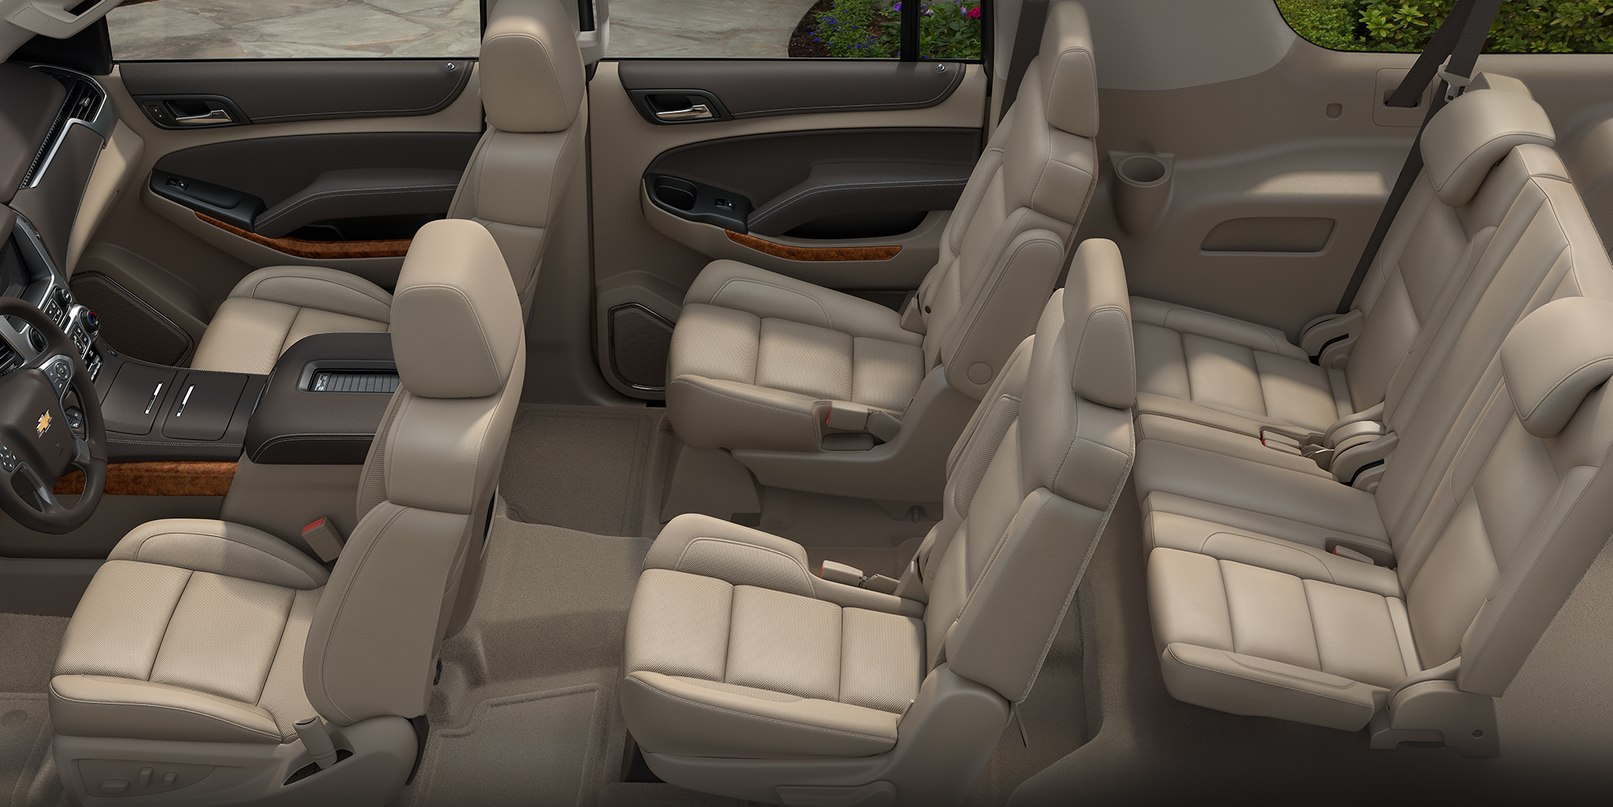 Spacious Cabin of the 2019 Suburban